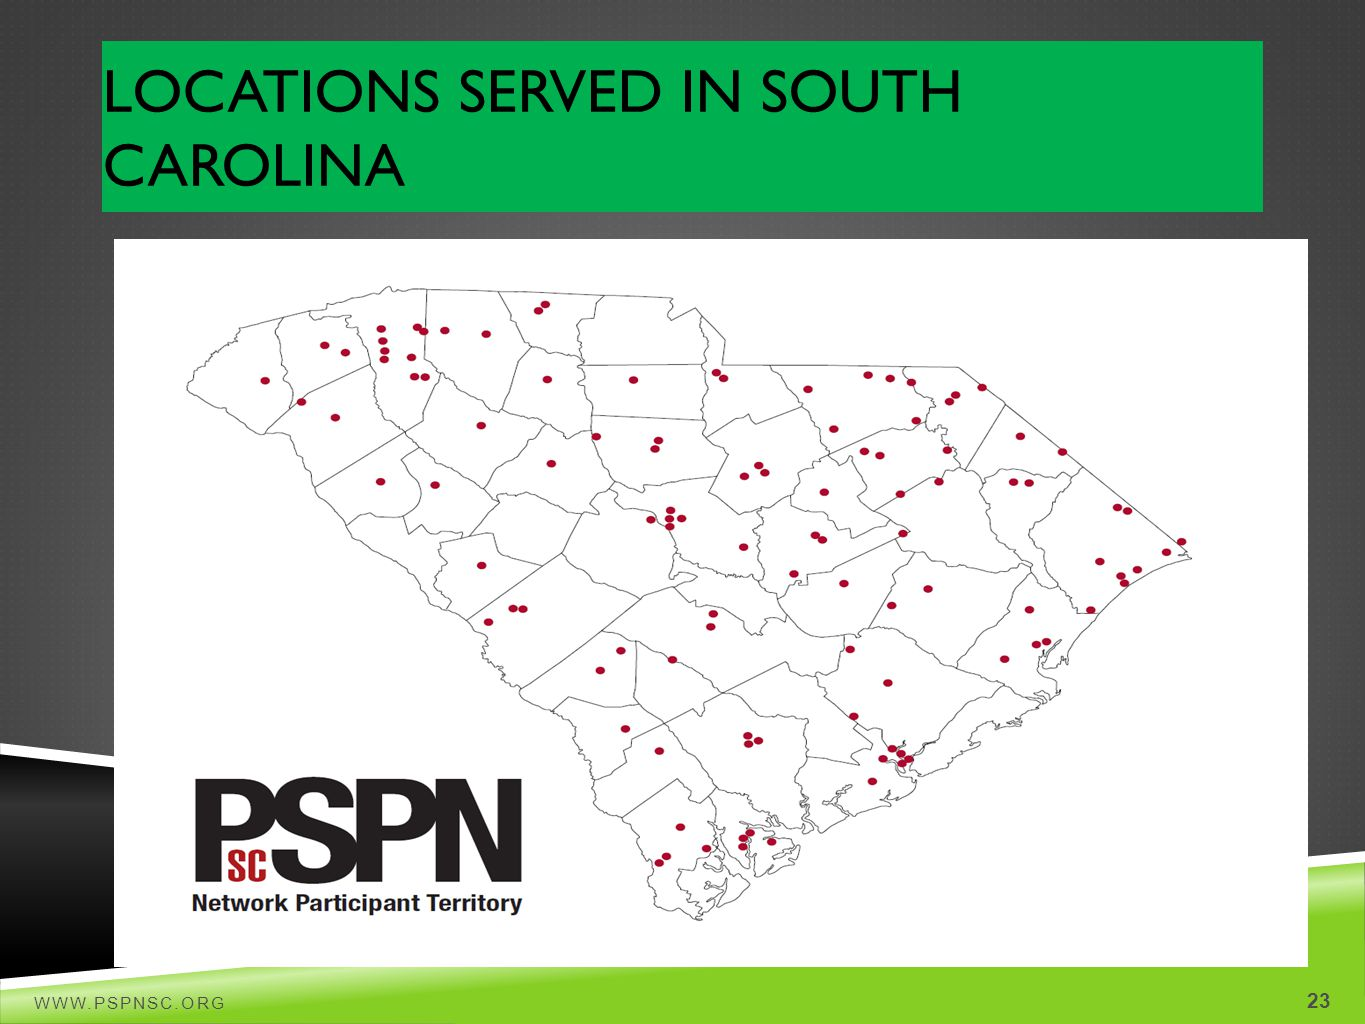 Locations Served in South Carolina